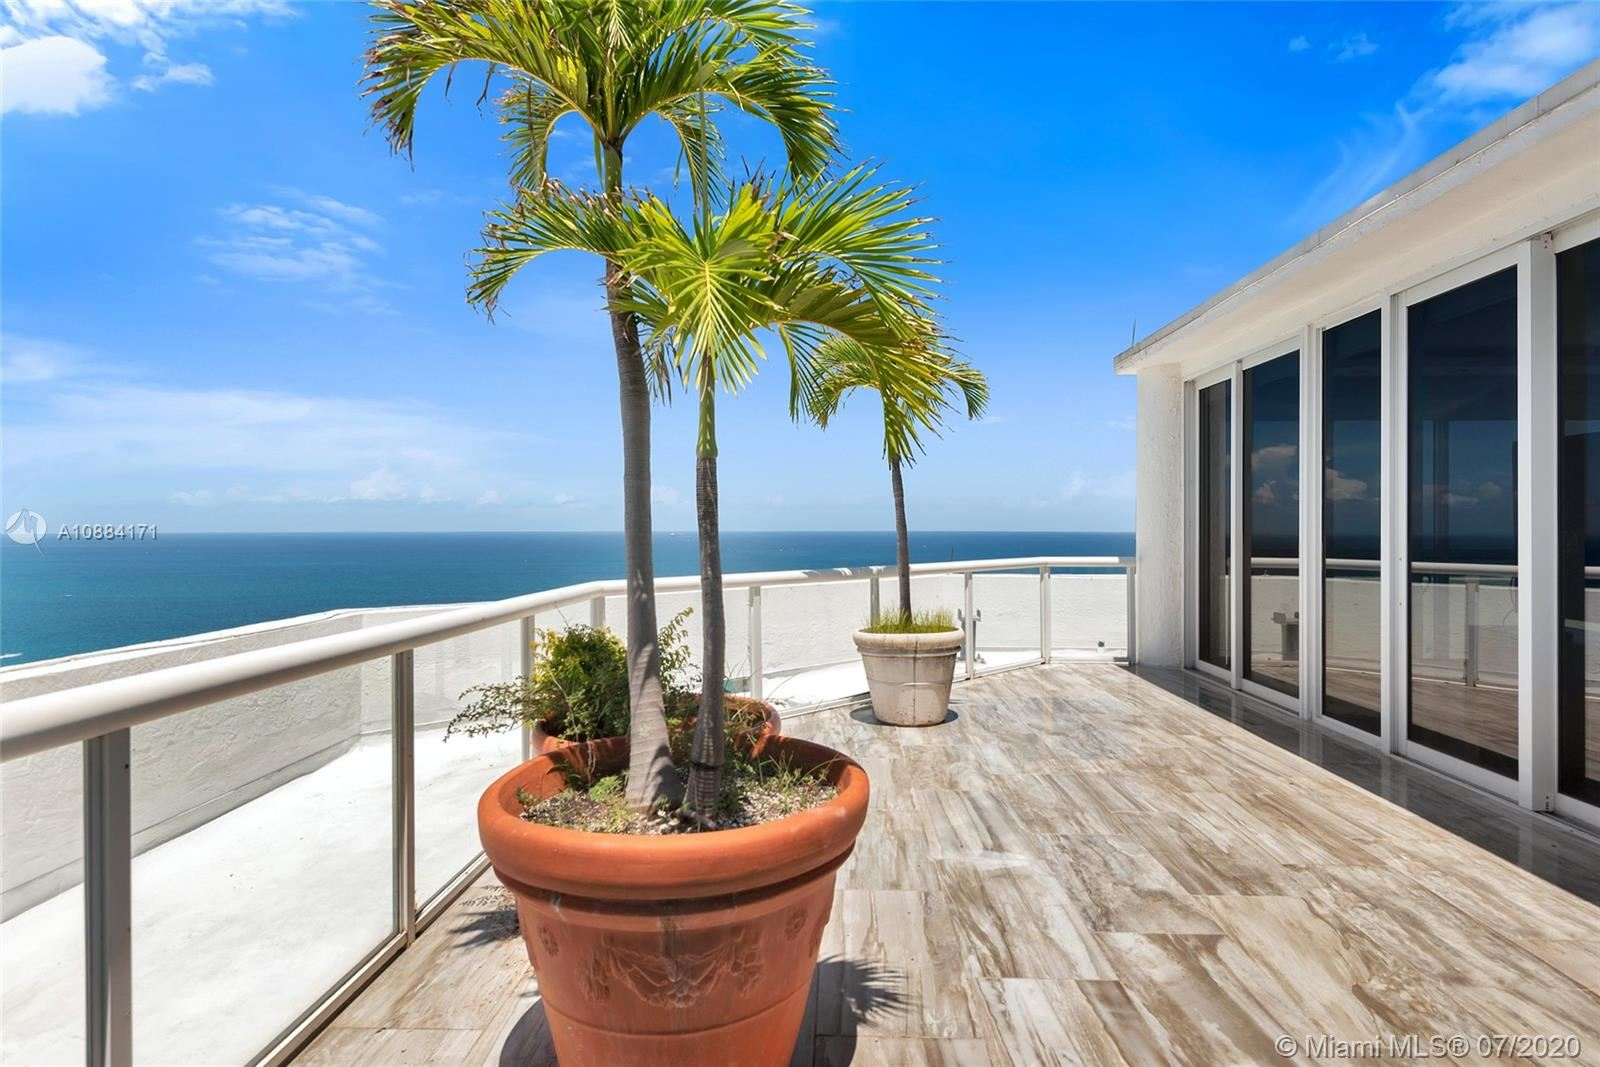 16425 Collins Ave #OS16A, Sunny Isles, FL 33160 - #: A10884171